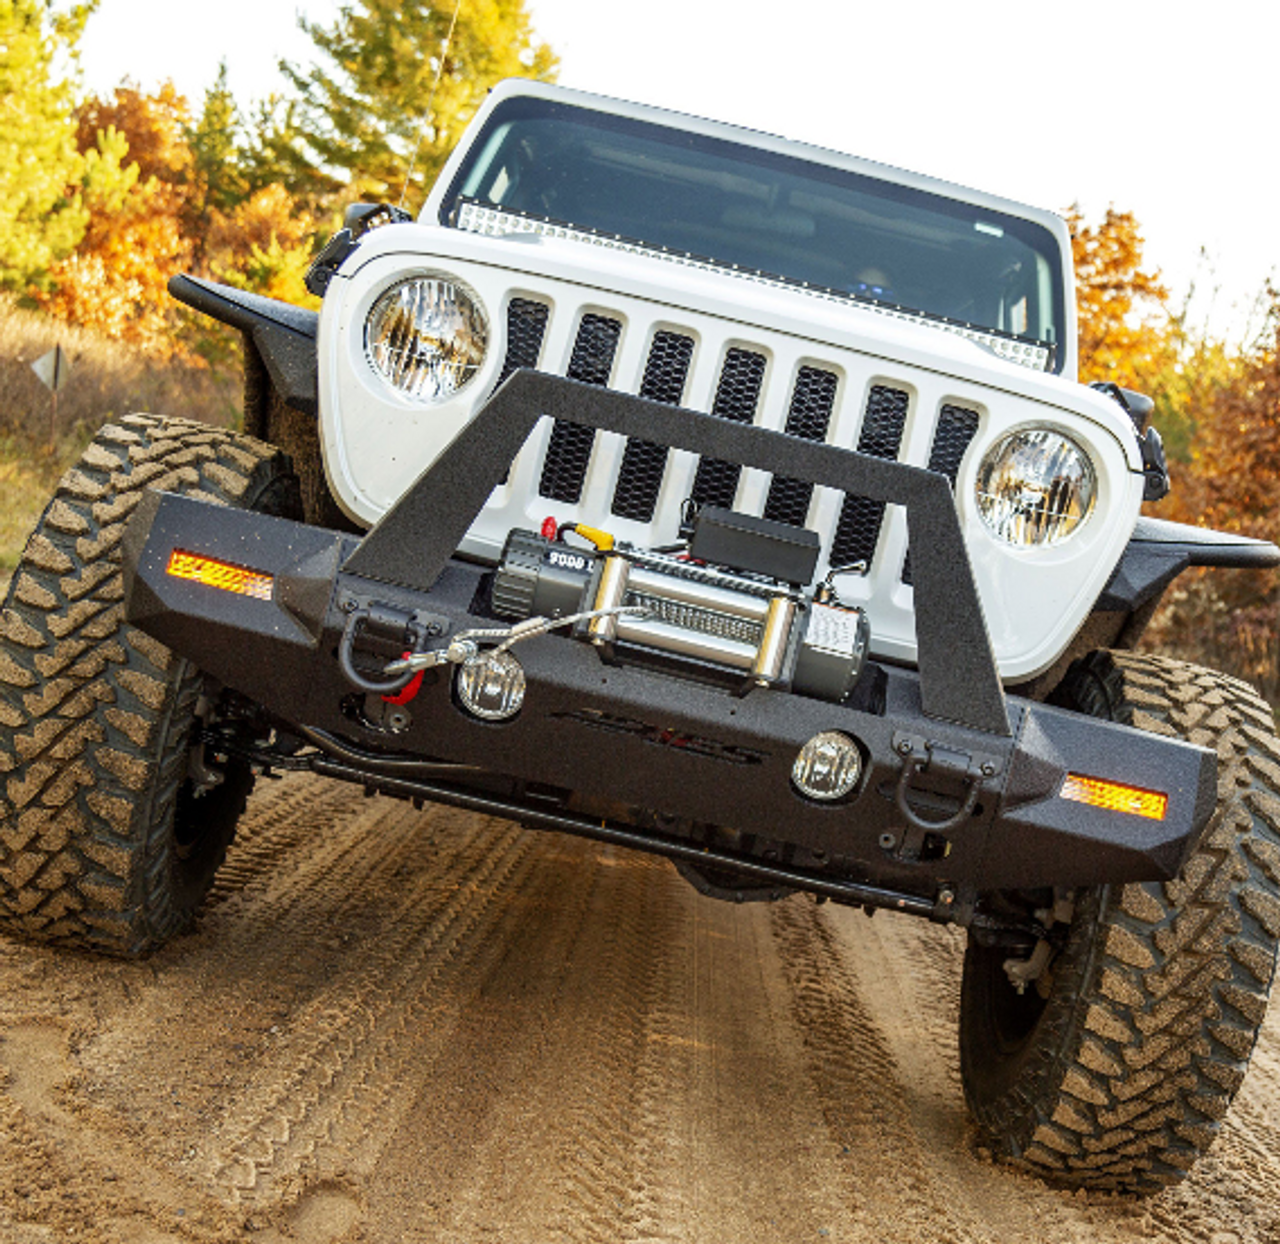 Aries 2082089 TrailChaser Front Bumper with Turn Signal Caps & Grille Guard in Steel for Jeep Wrangler JL & Gladiator JT 2018+